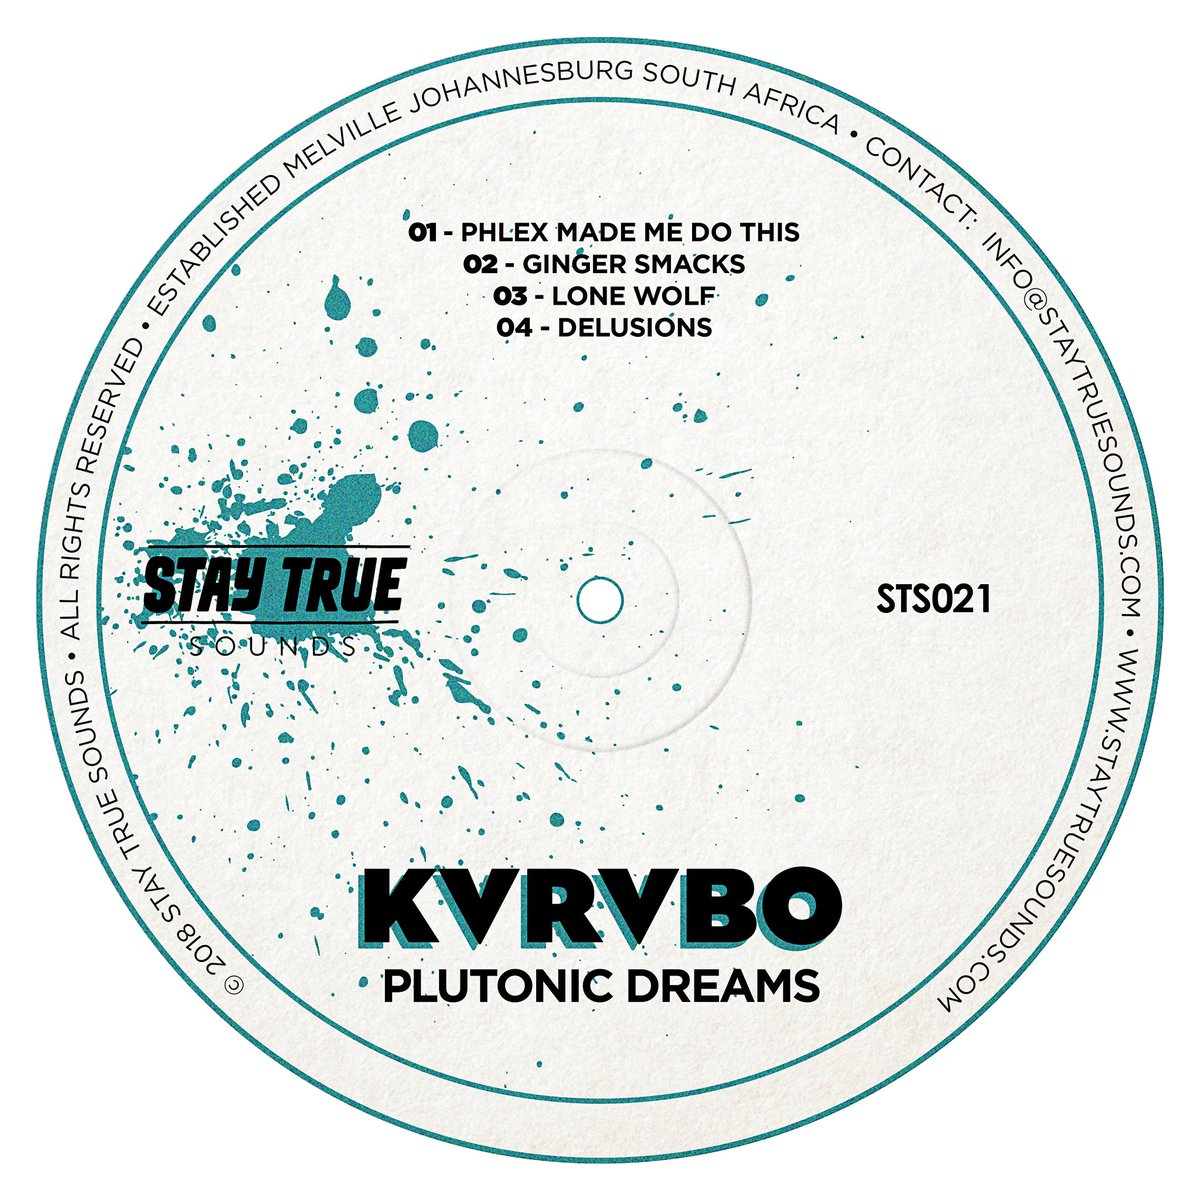 Very happy to announce KVRVBO's Plutonic Dreams EP is available on all digital online stores now.  Tracklist: - Phlex Made Me Do This - Ginger Smacks - Lone Wolf - Delusions  #deephouse #southafrica #deep<br>http://pic.twitter.com/mqDYBwmbT7